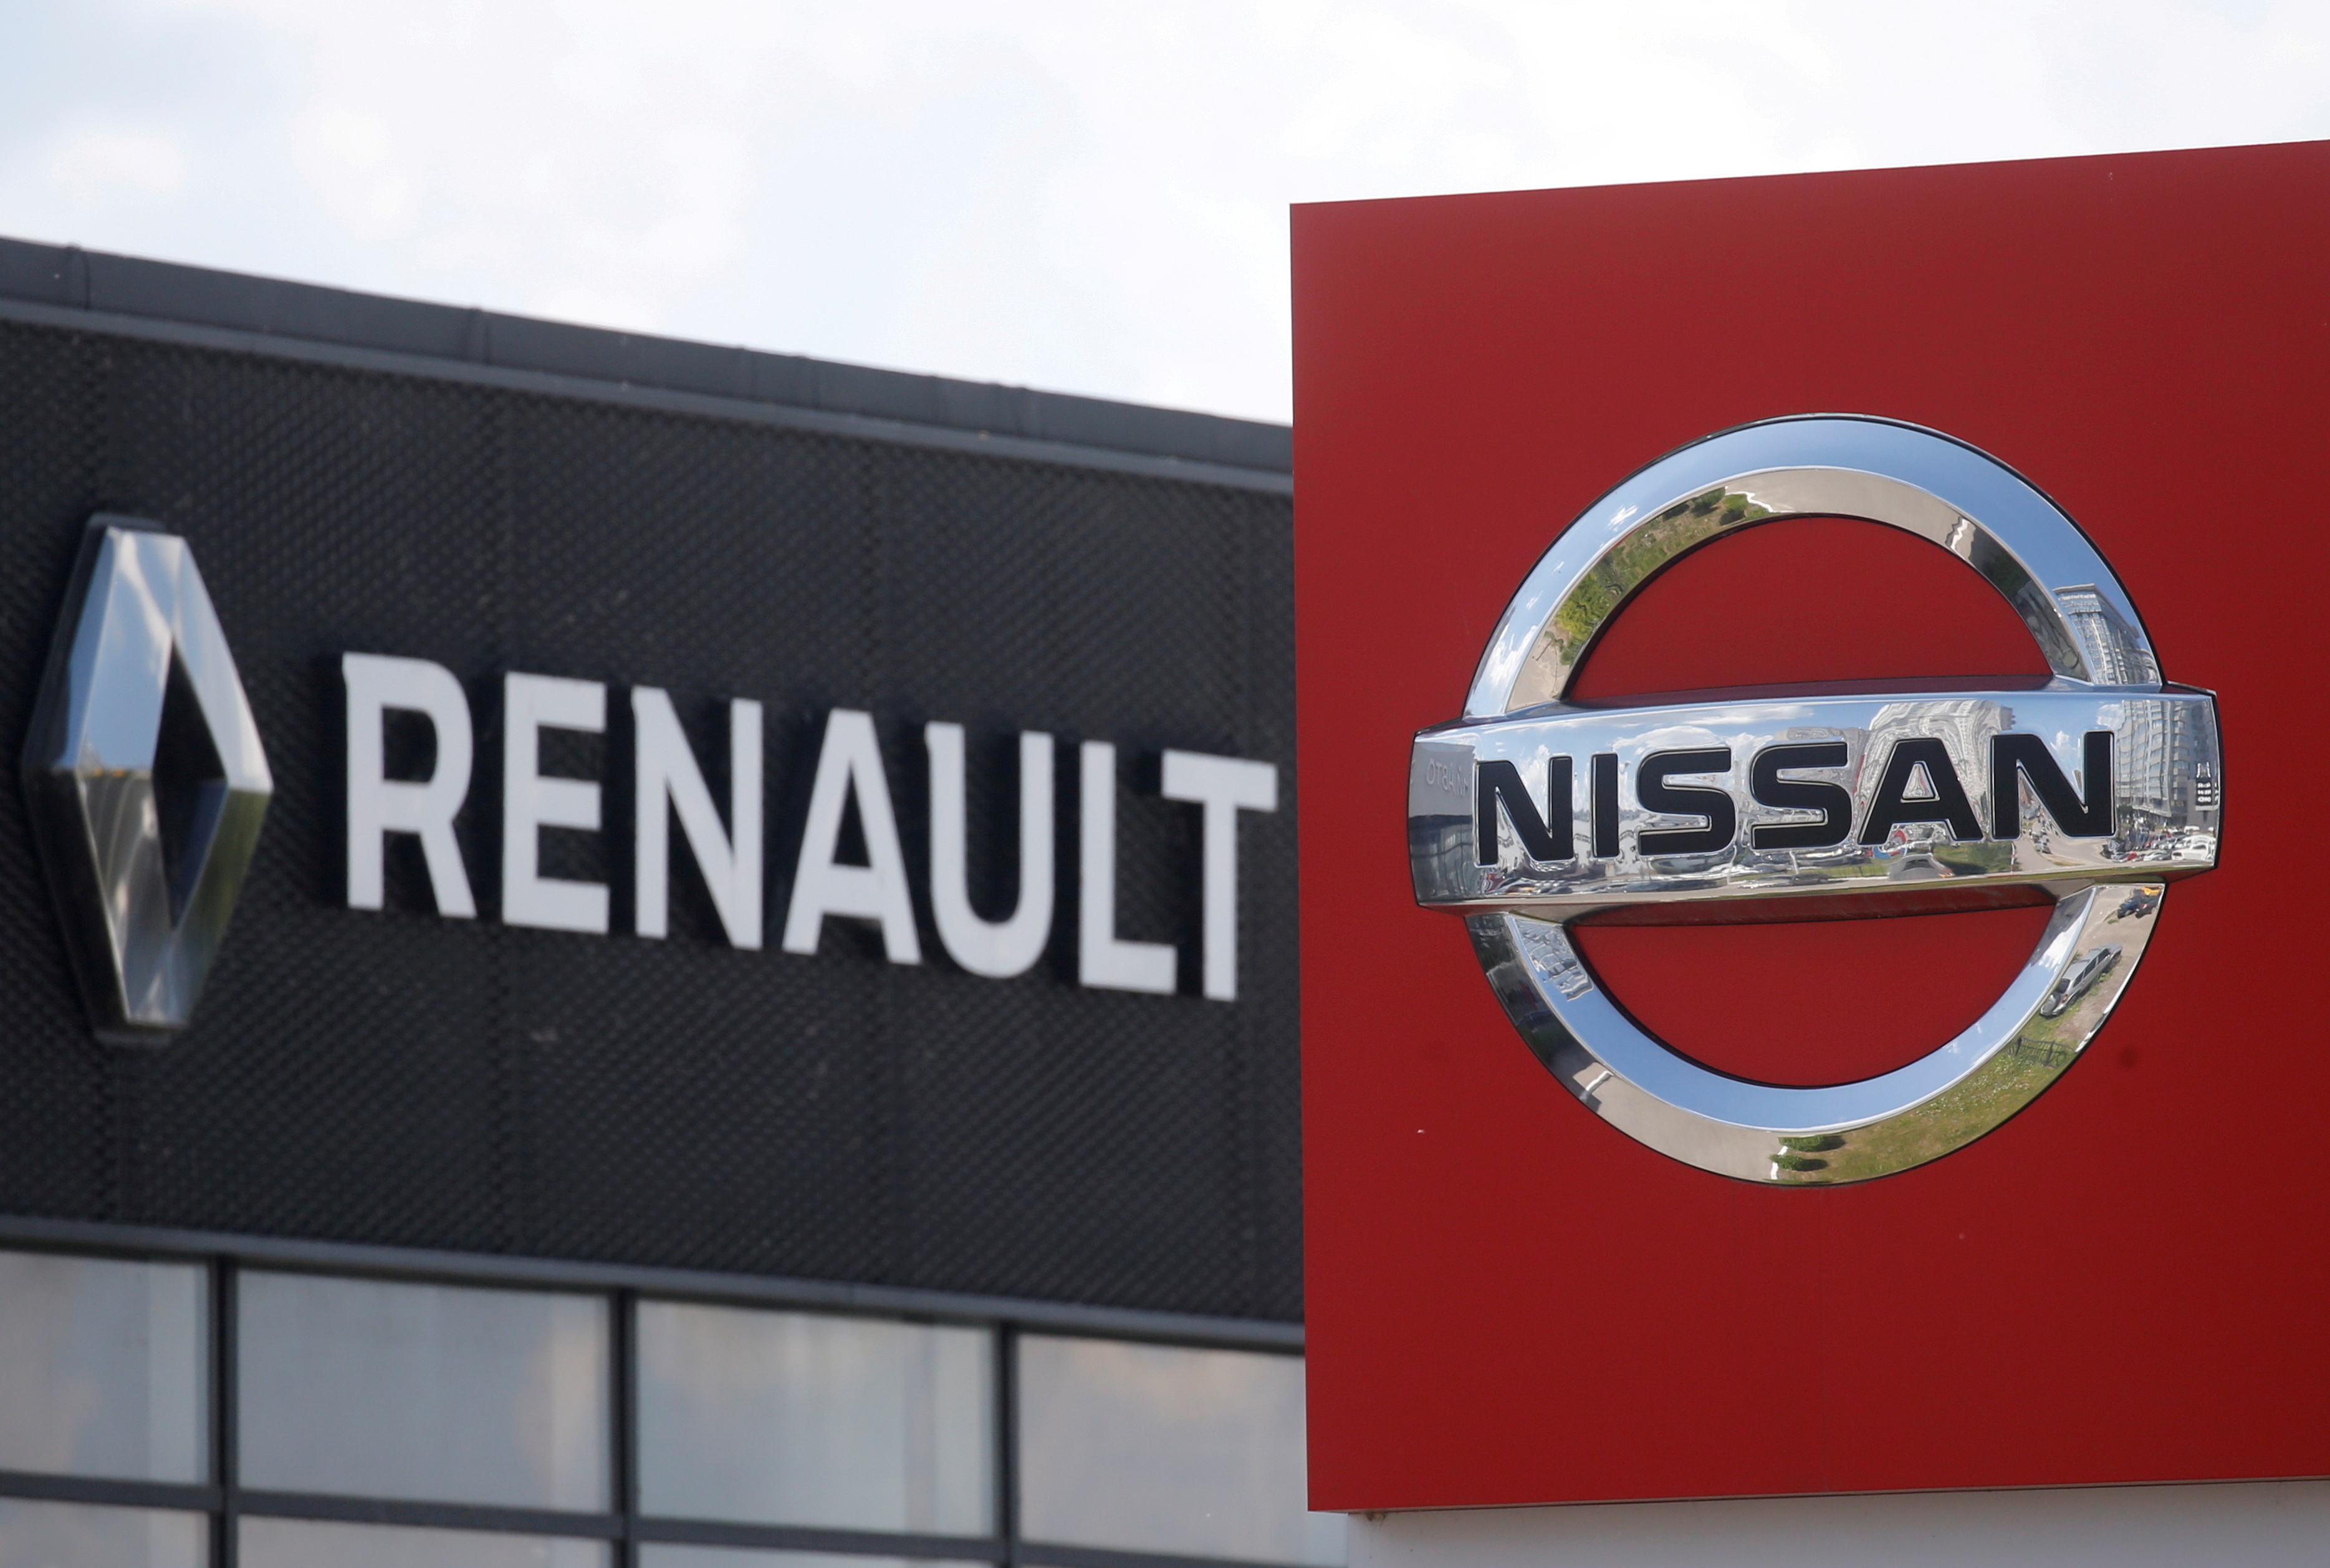 The logos of car manufacturers Nissan and Renault are pictured at a dealership Kyiv, Ukraine June 25, 2020. REUTERS/Valentyn Ogirenko/File Photo